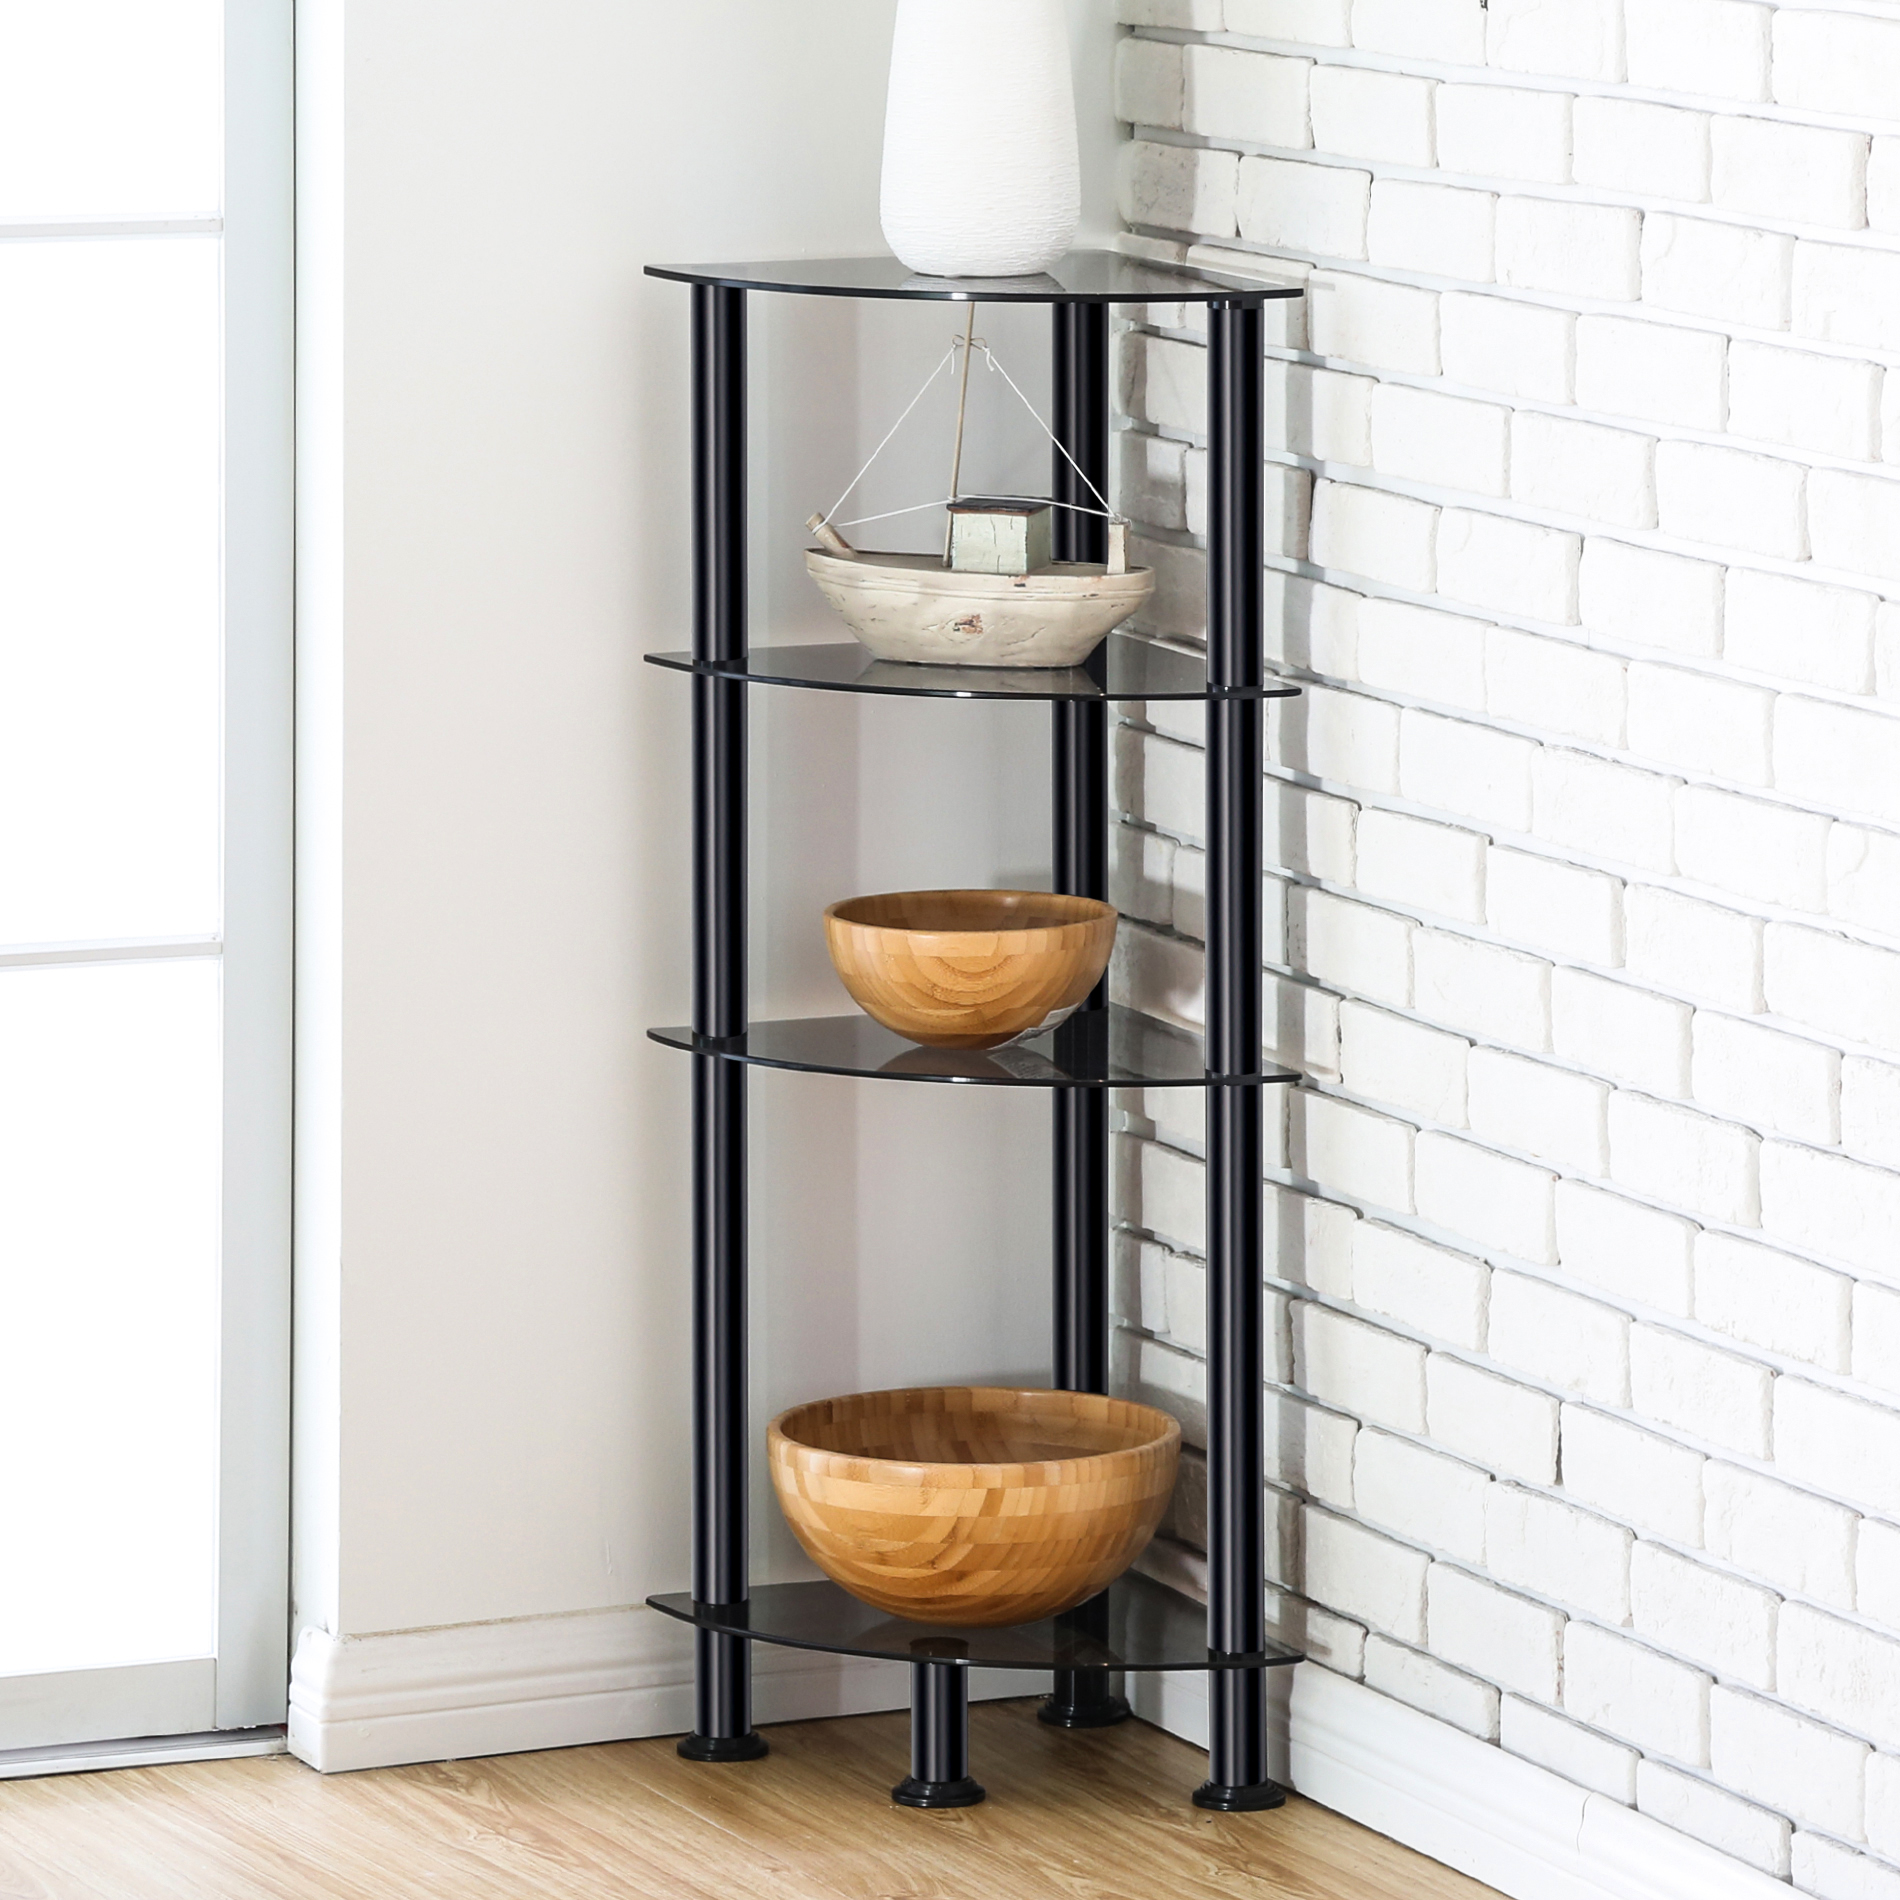 FITUEYES 4-Tier Corner Shelf Bookcase Black Tempered Glass Display Rack GS404701GB